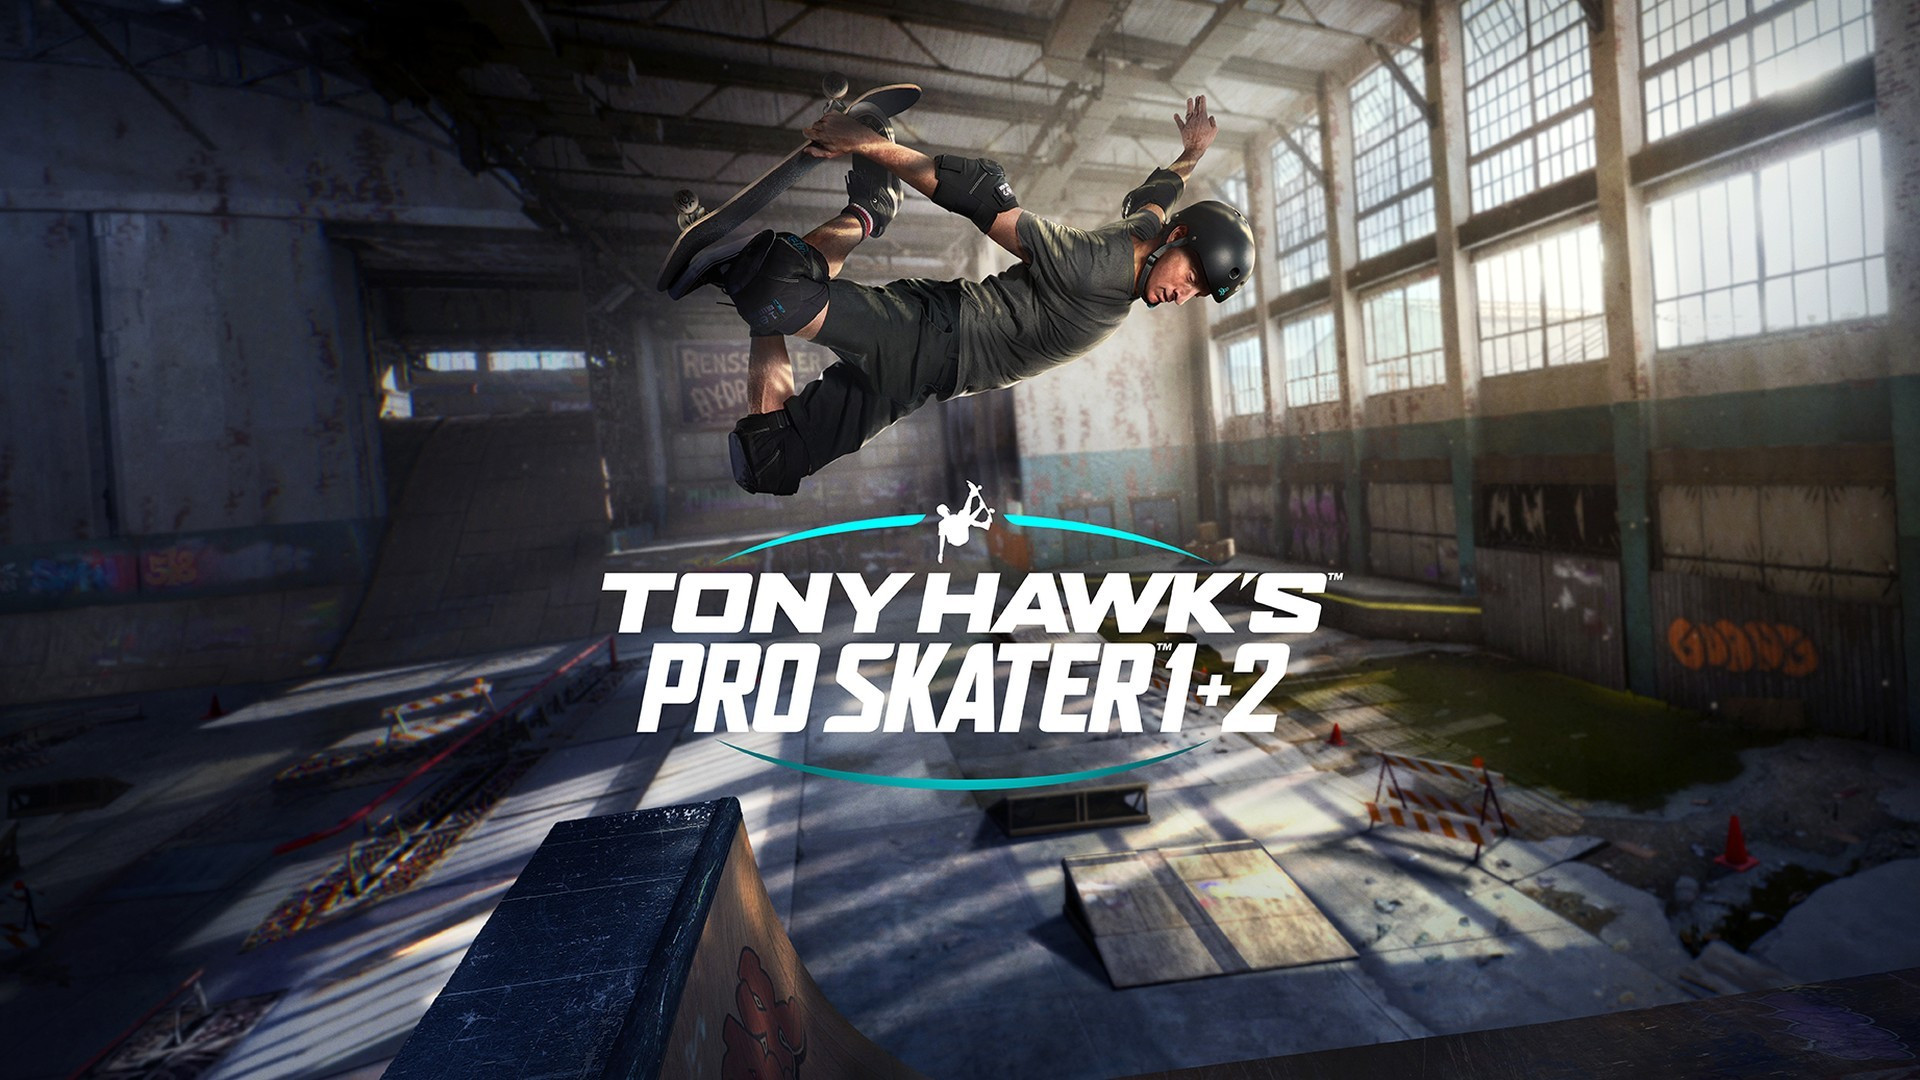 Tony Hawks Pro Skater 1 and 2 Radically Remastered and Coming to 1920x1080